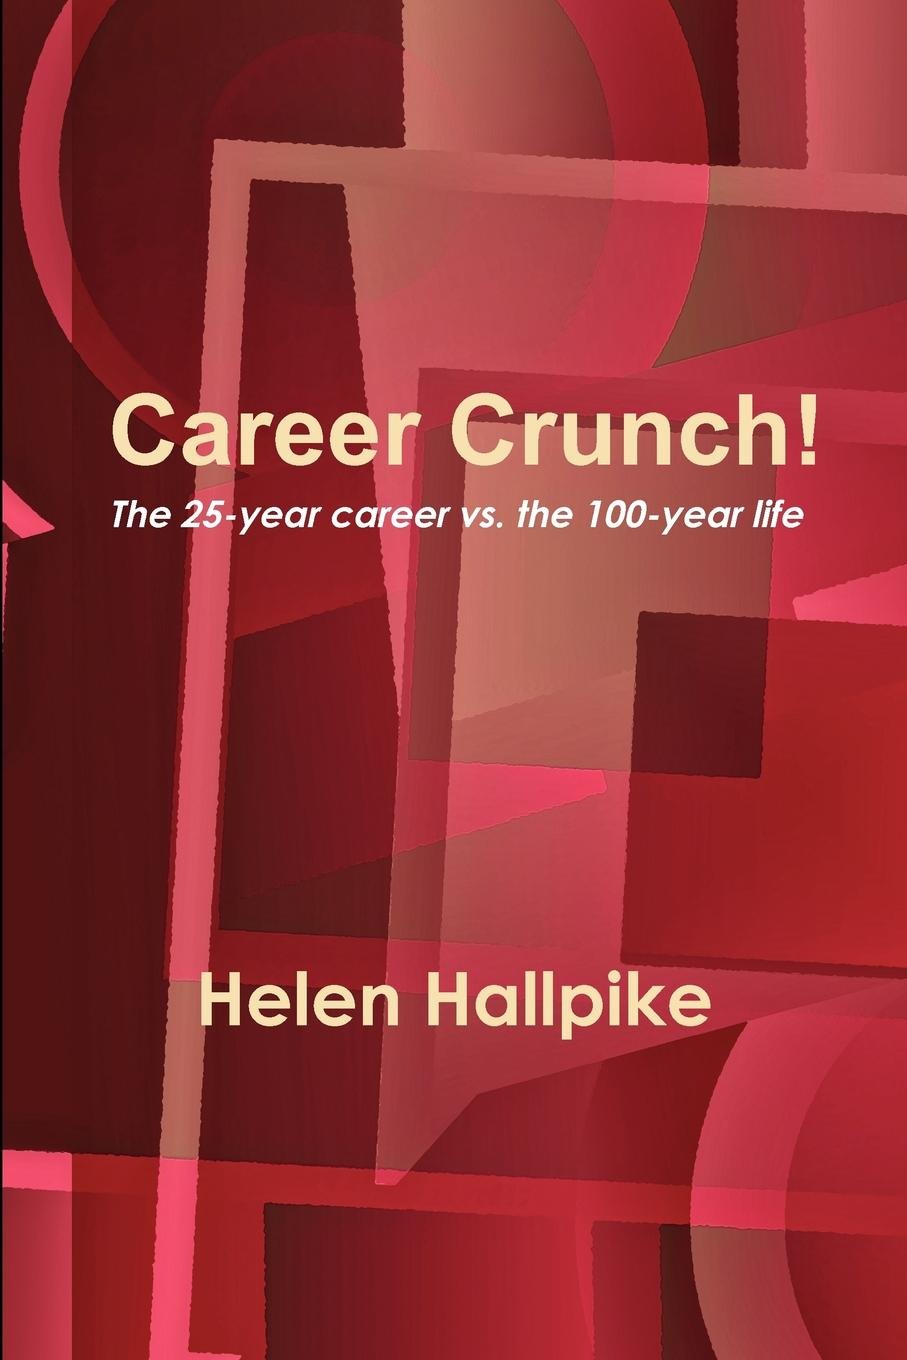 Career Crunch. Latest version: May 2010 Careers shortening lives...